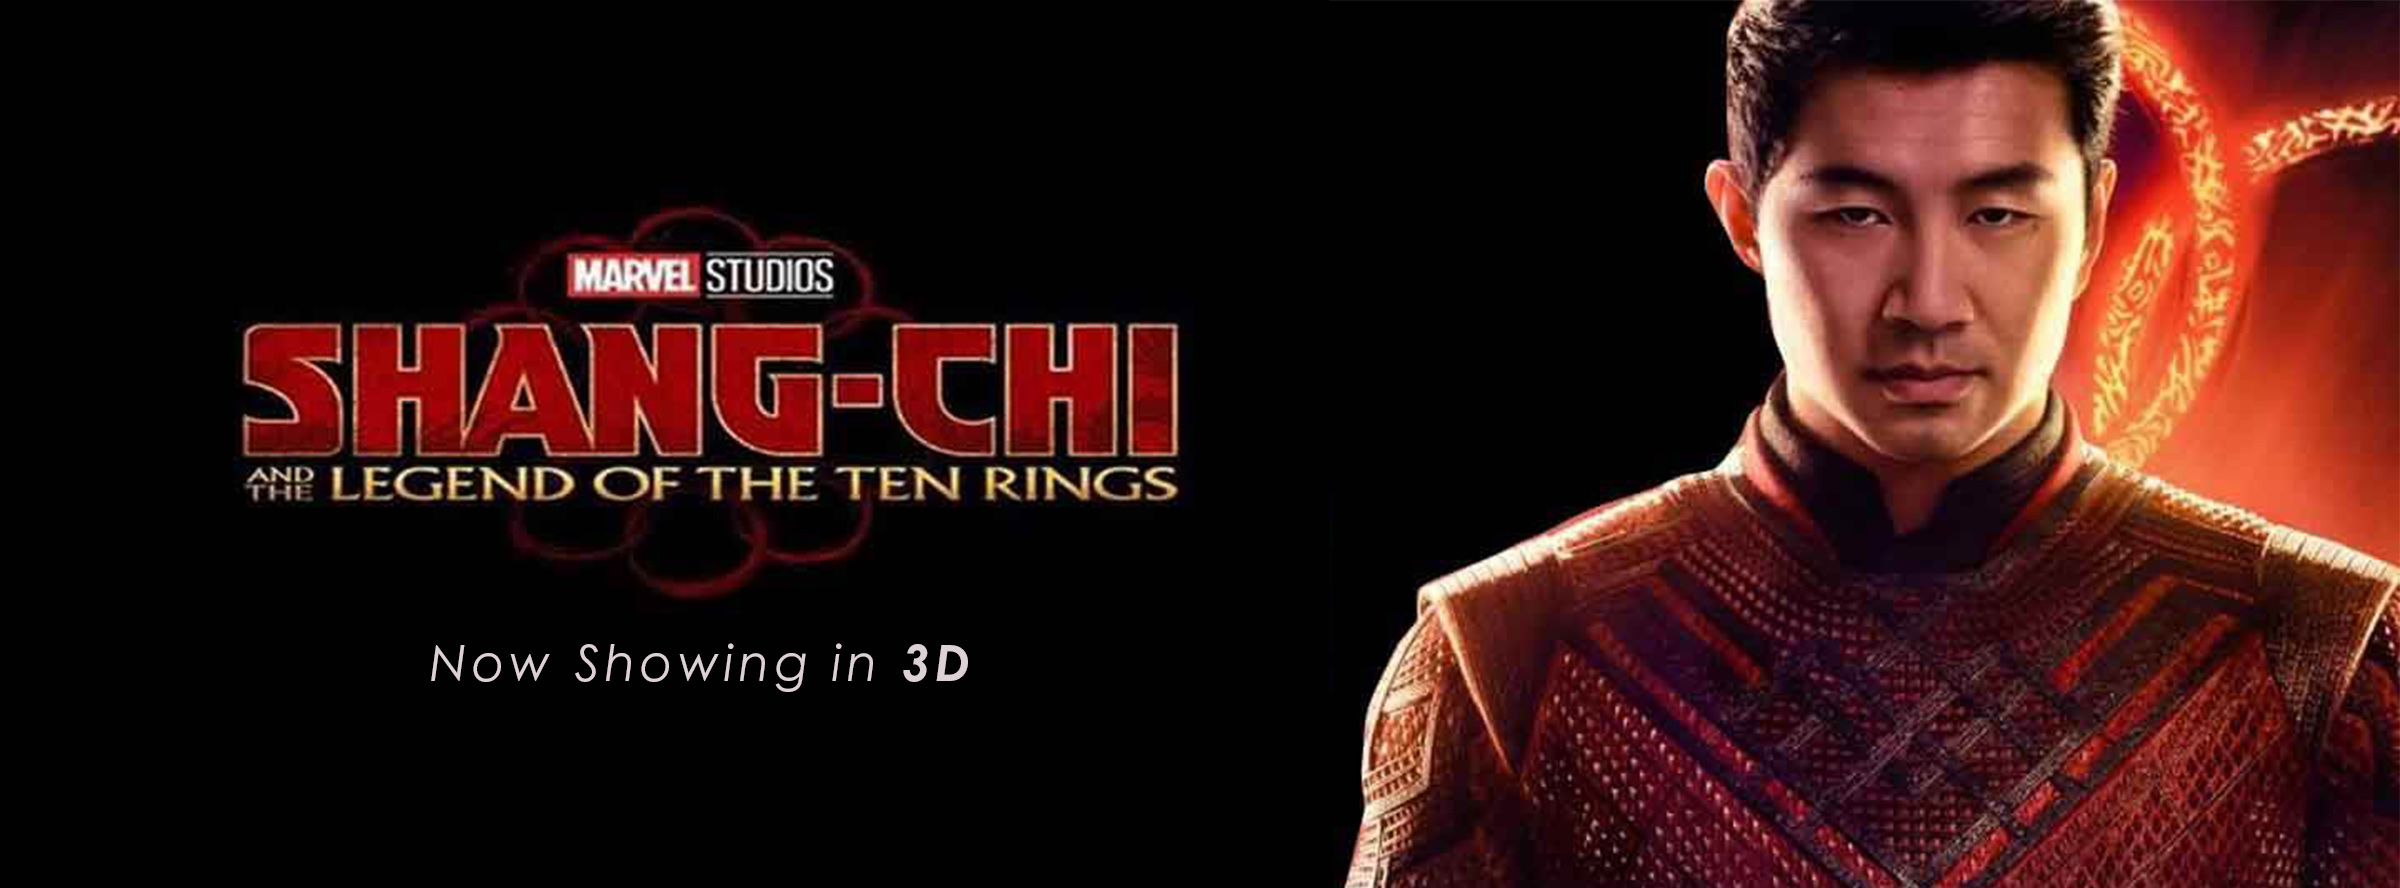 Slider Image for Shang-Chi and the Legend of the Ten Rings 3D